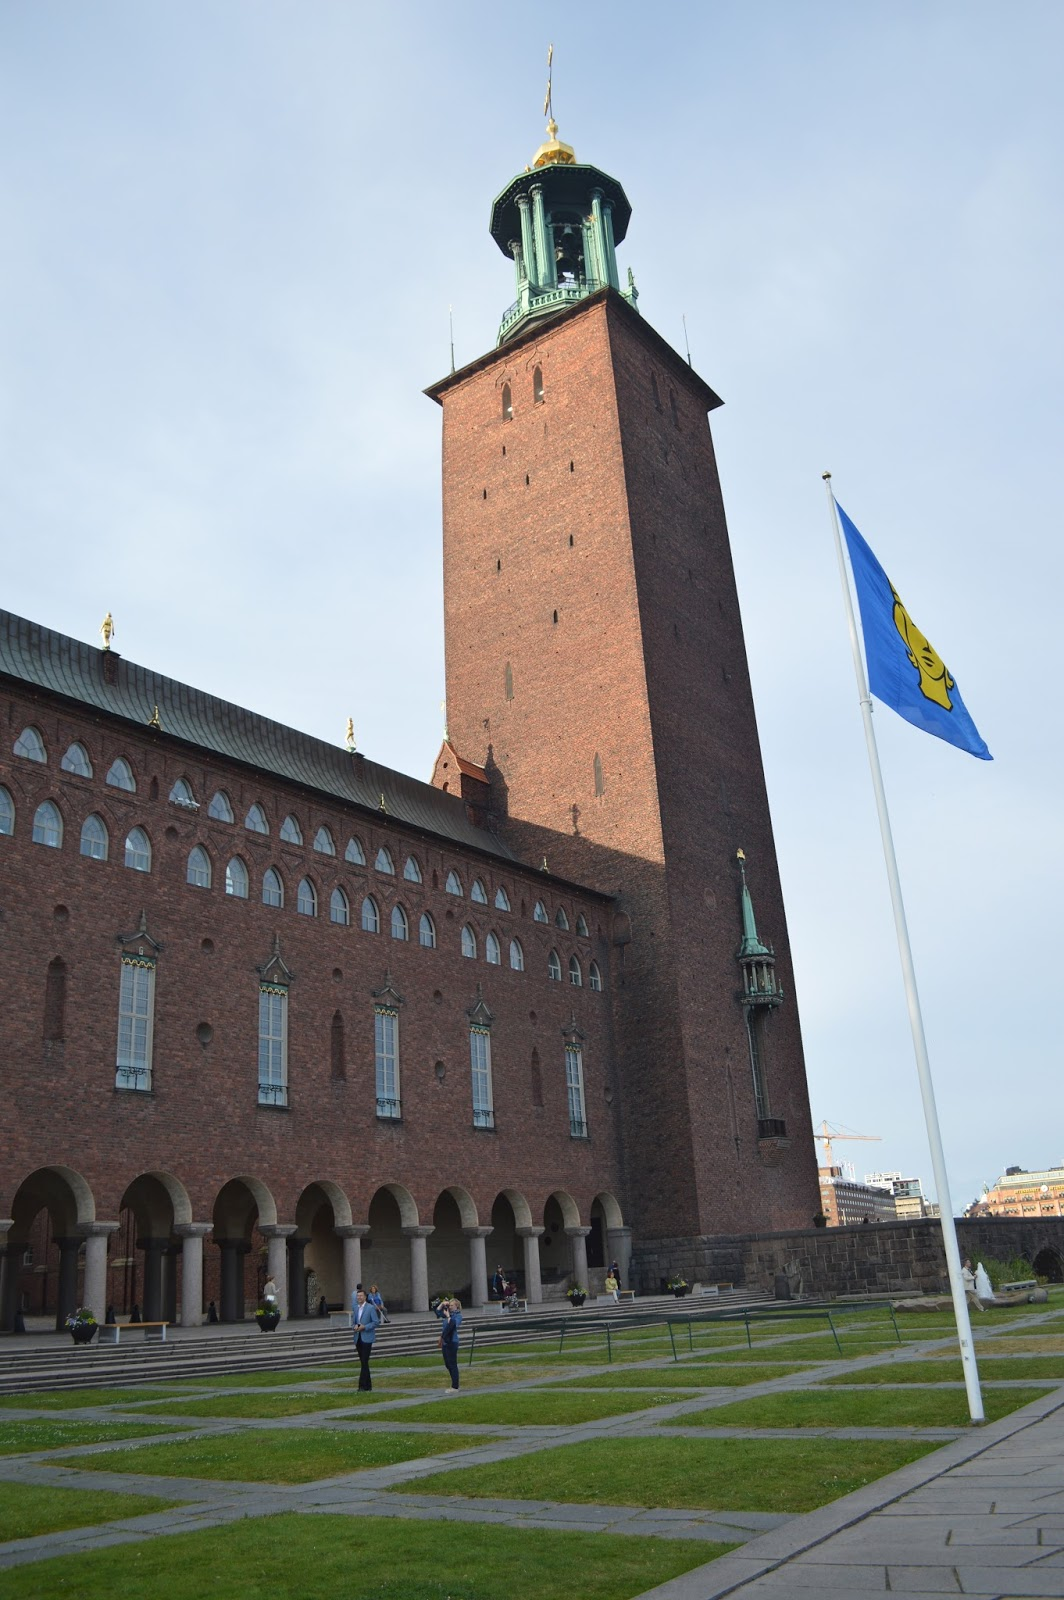 Places to visit in Stockholm - Stadshuset city hall